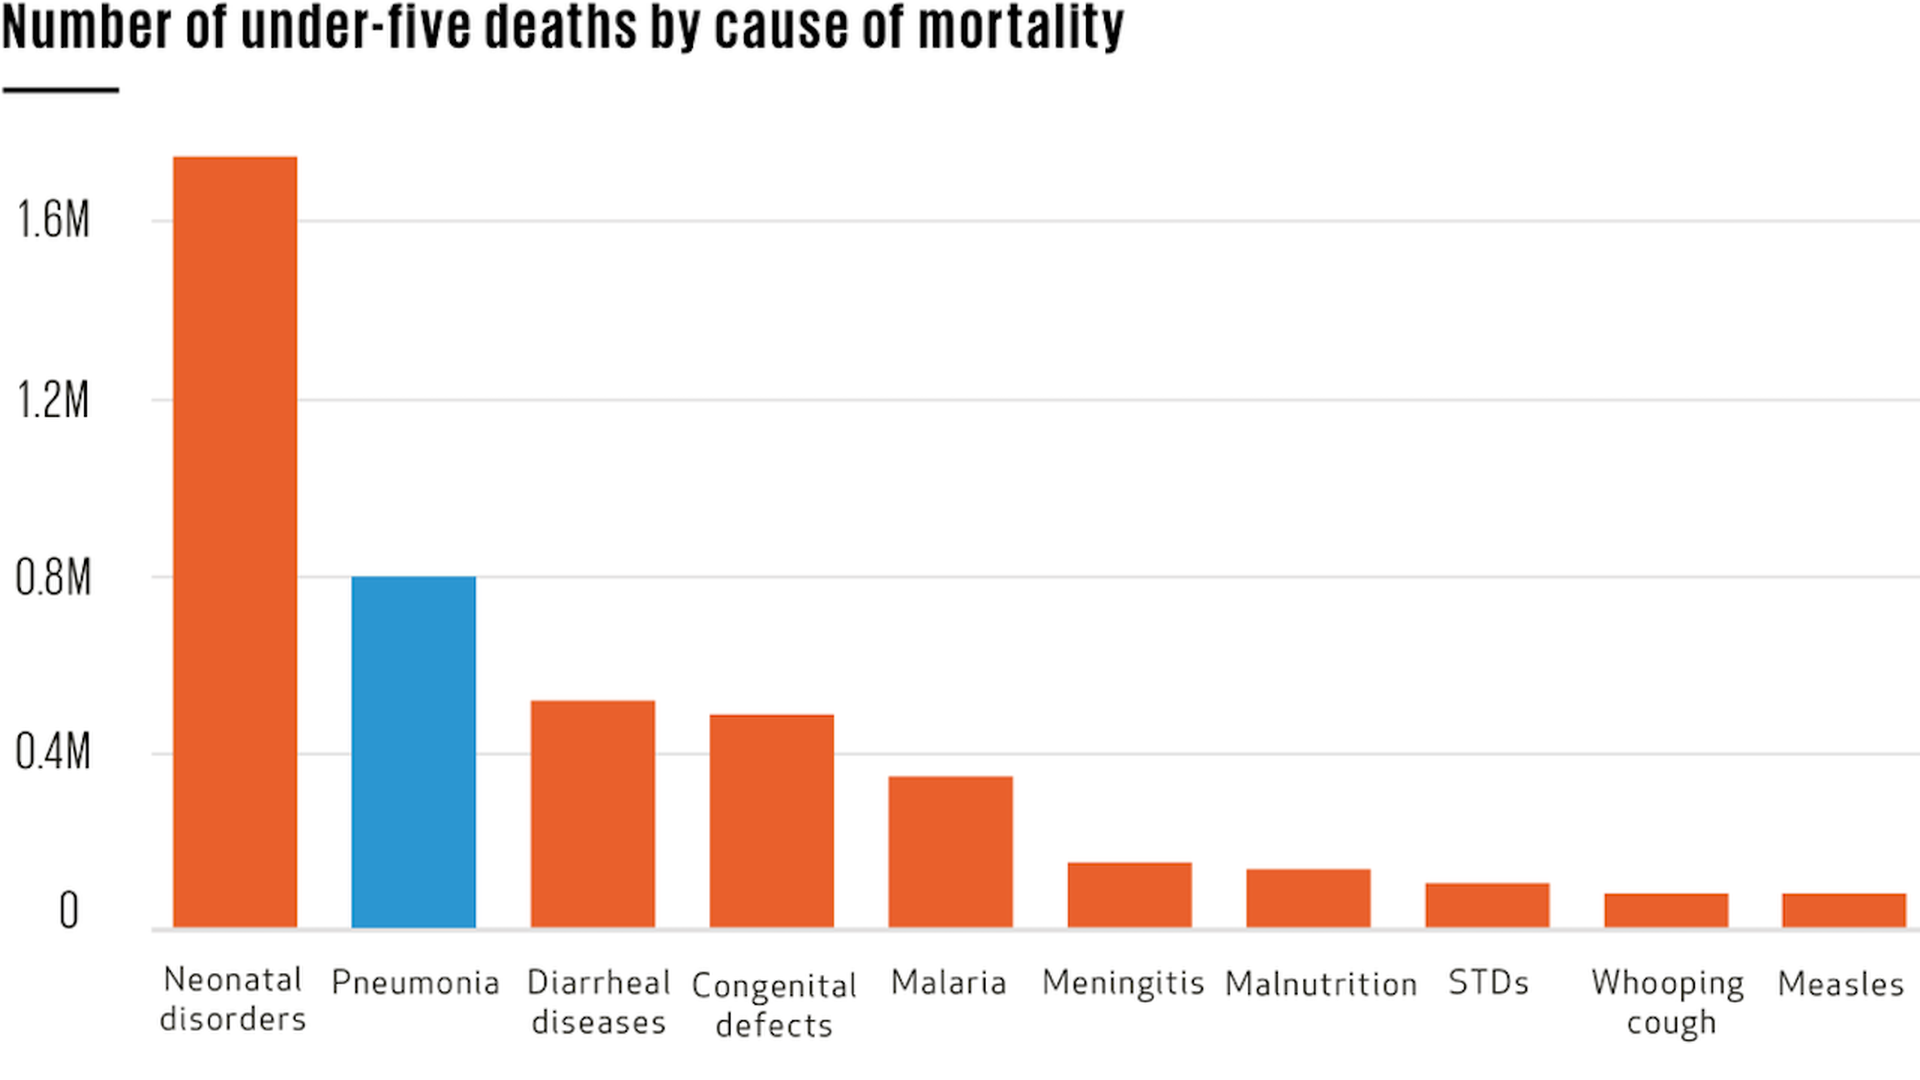 The number of children who die under age 5 has declined steadily